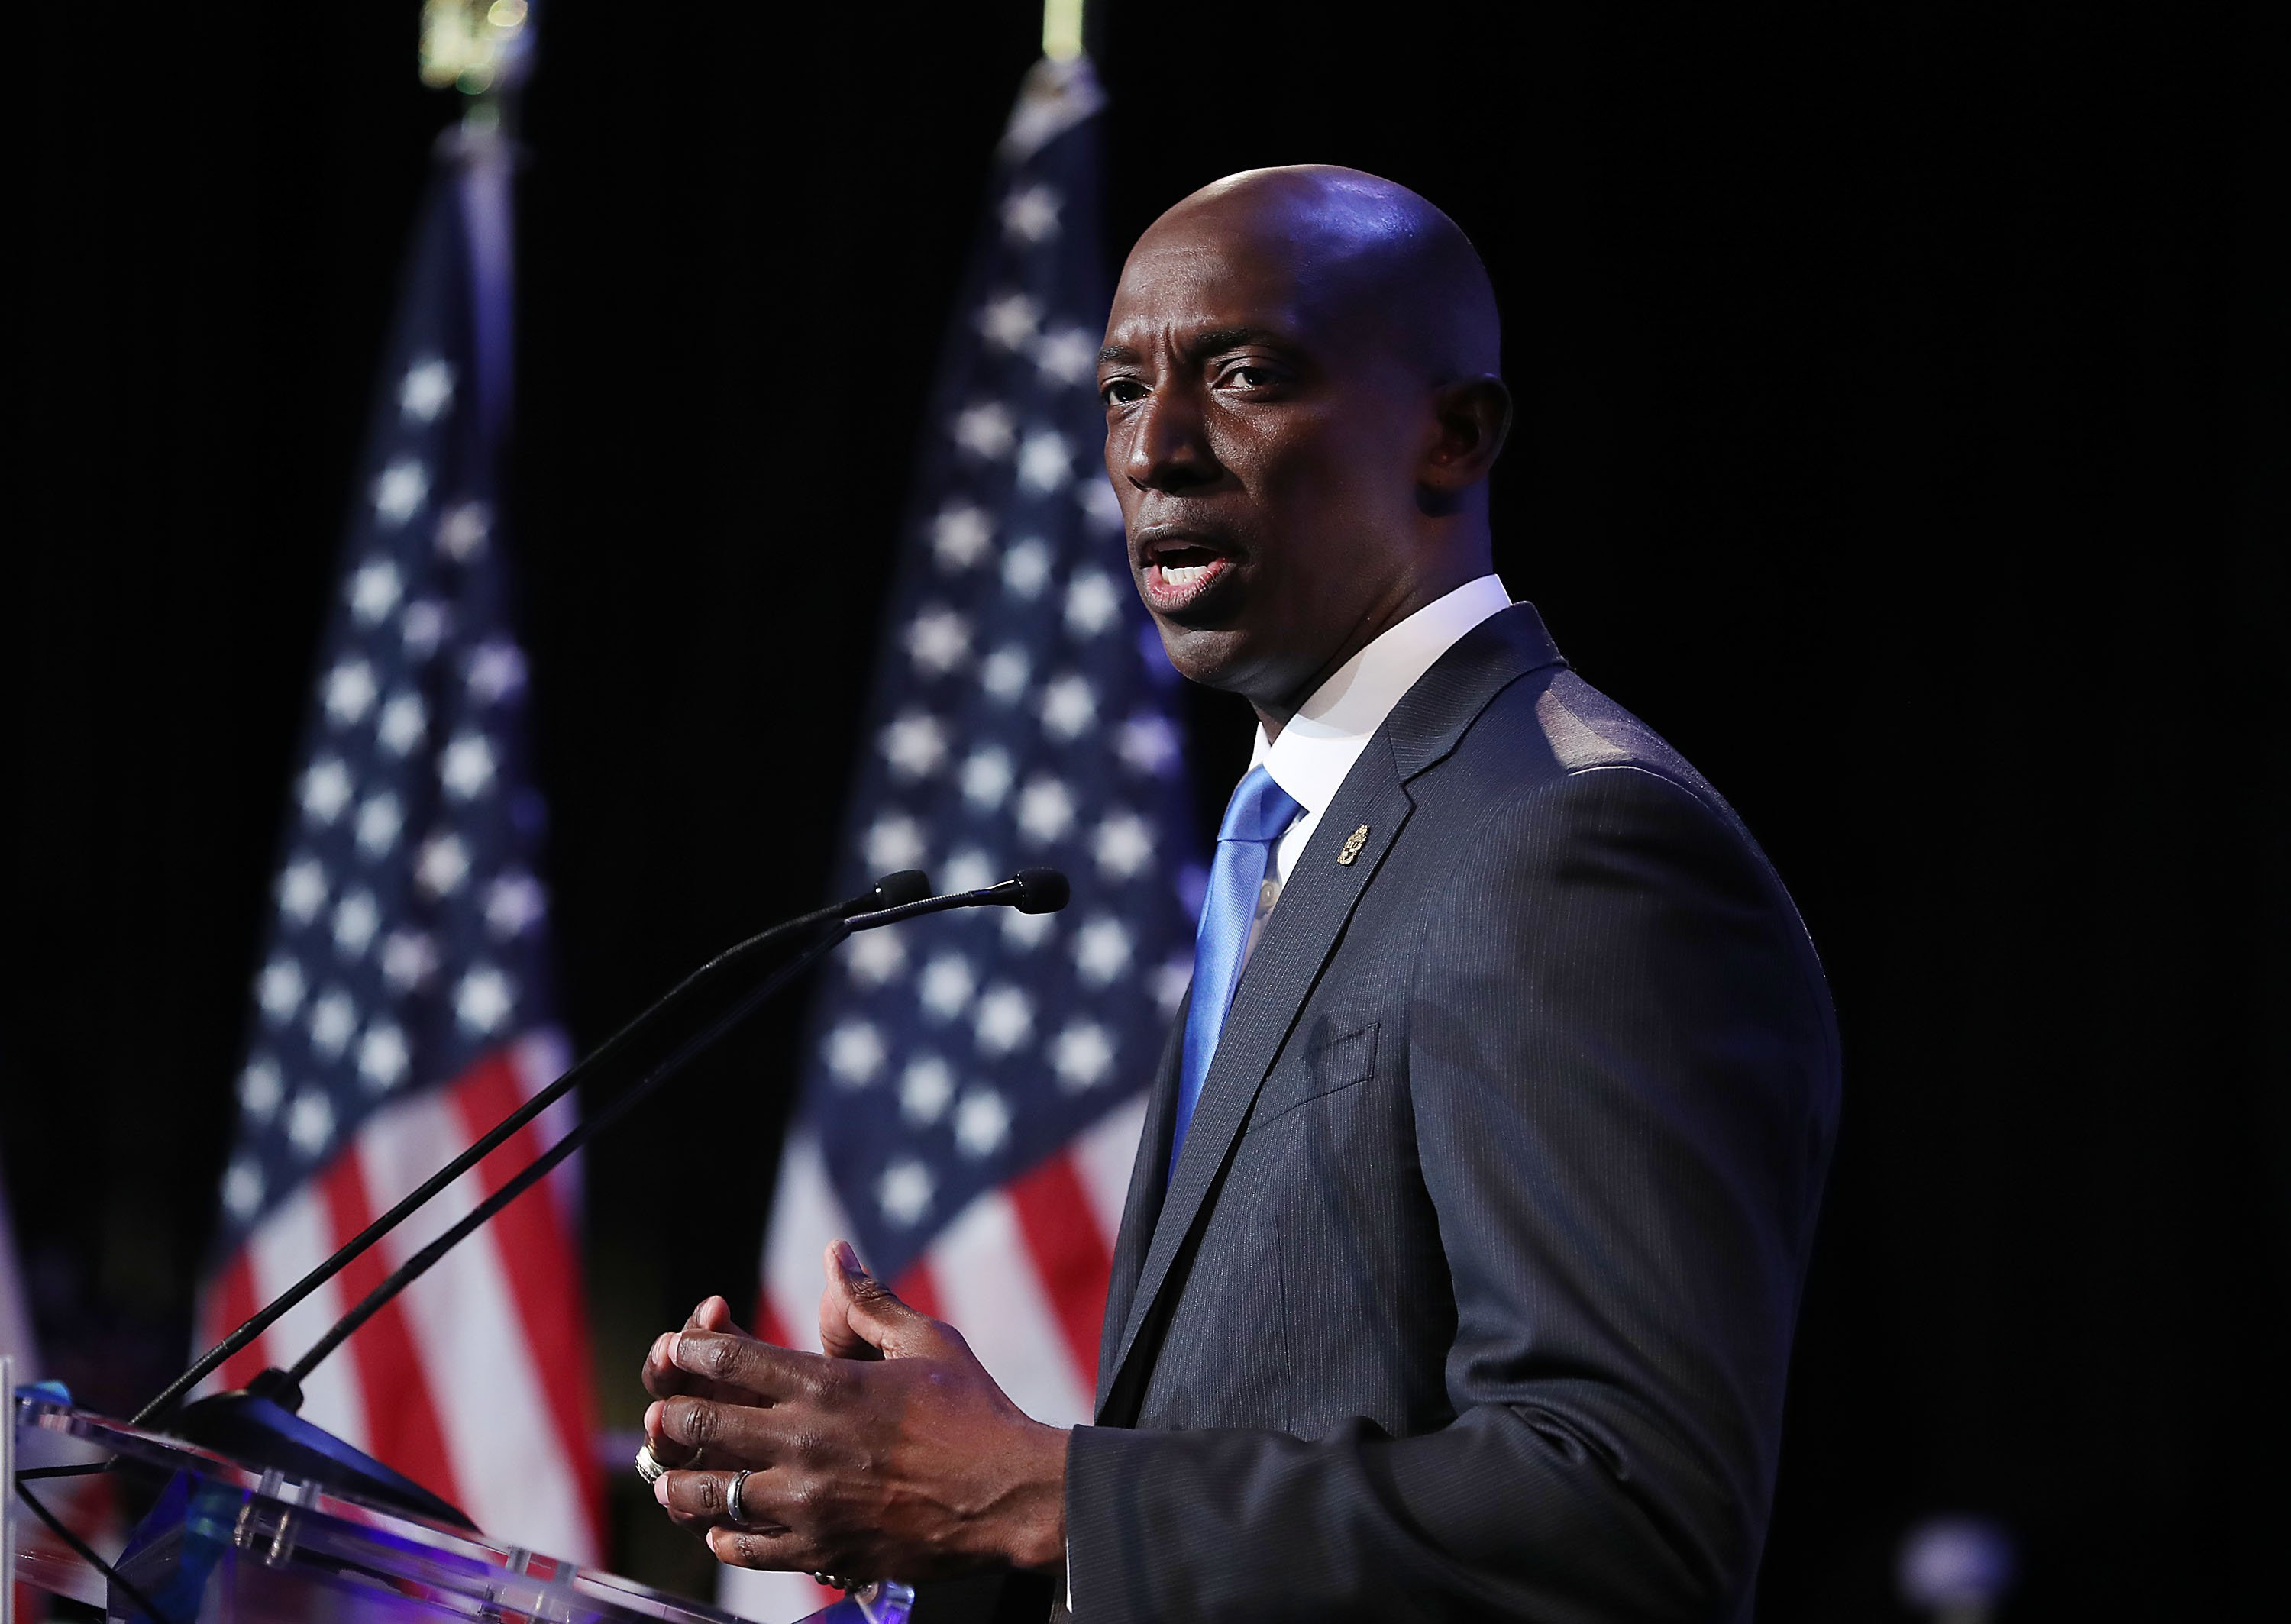 Wayne Messam suspends his 2020 Democratic presidential campaign